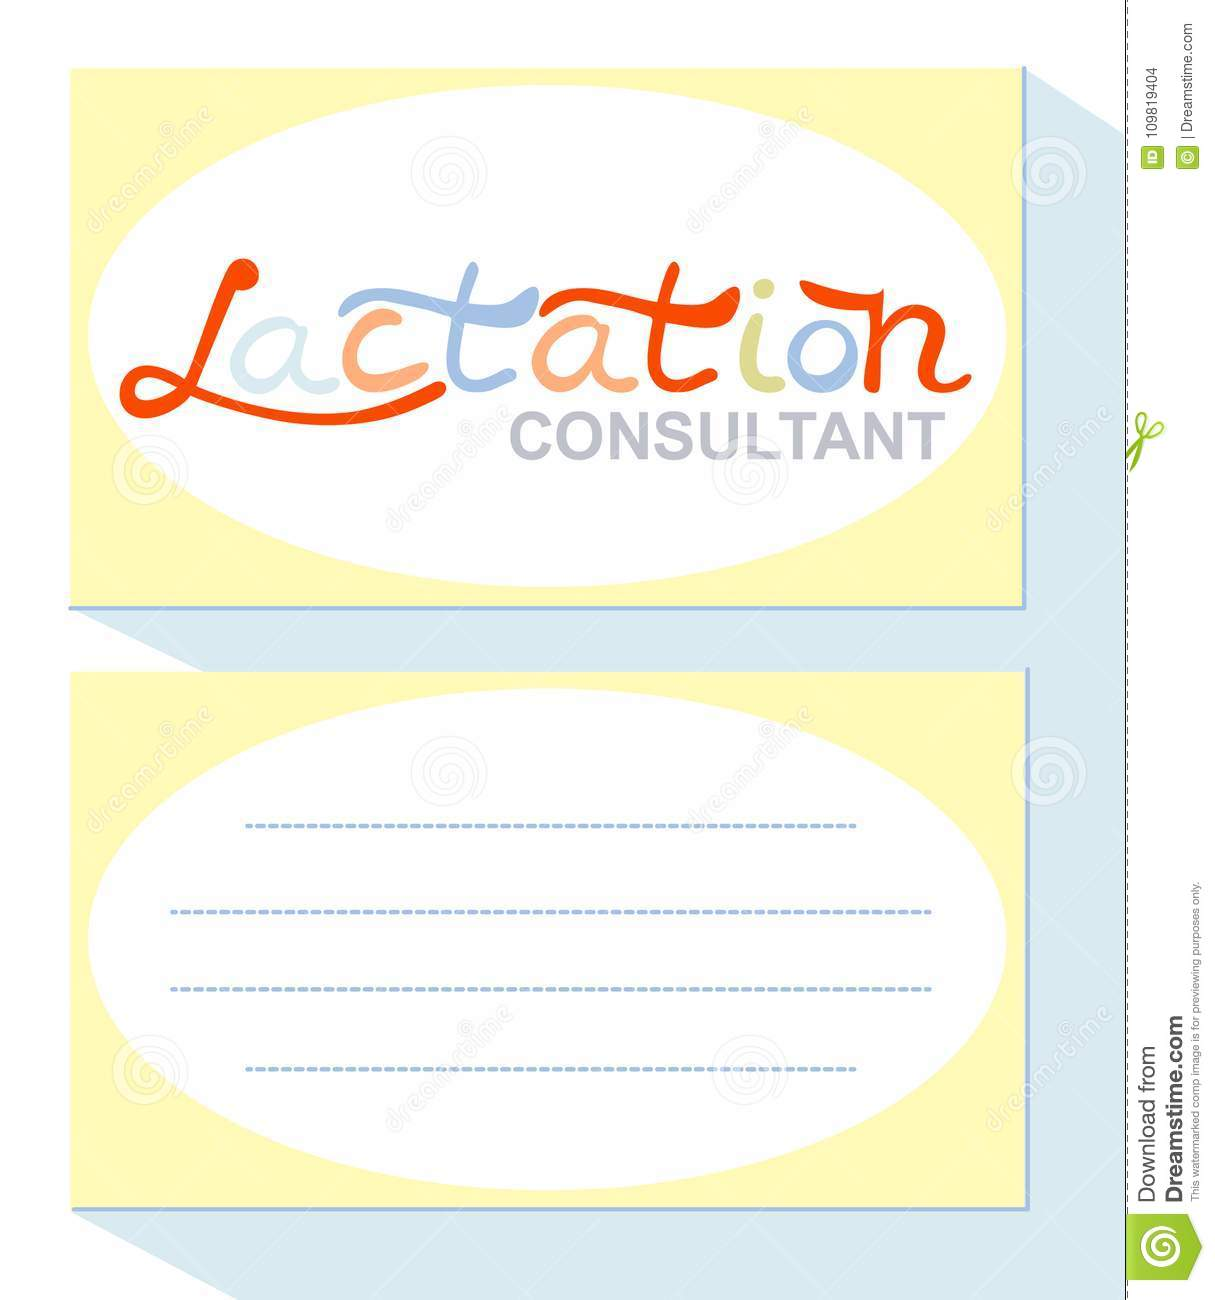 Business card for a lactation consultant, breast feeding